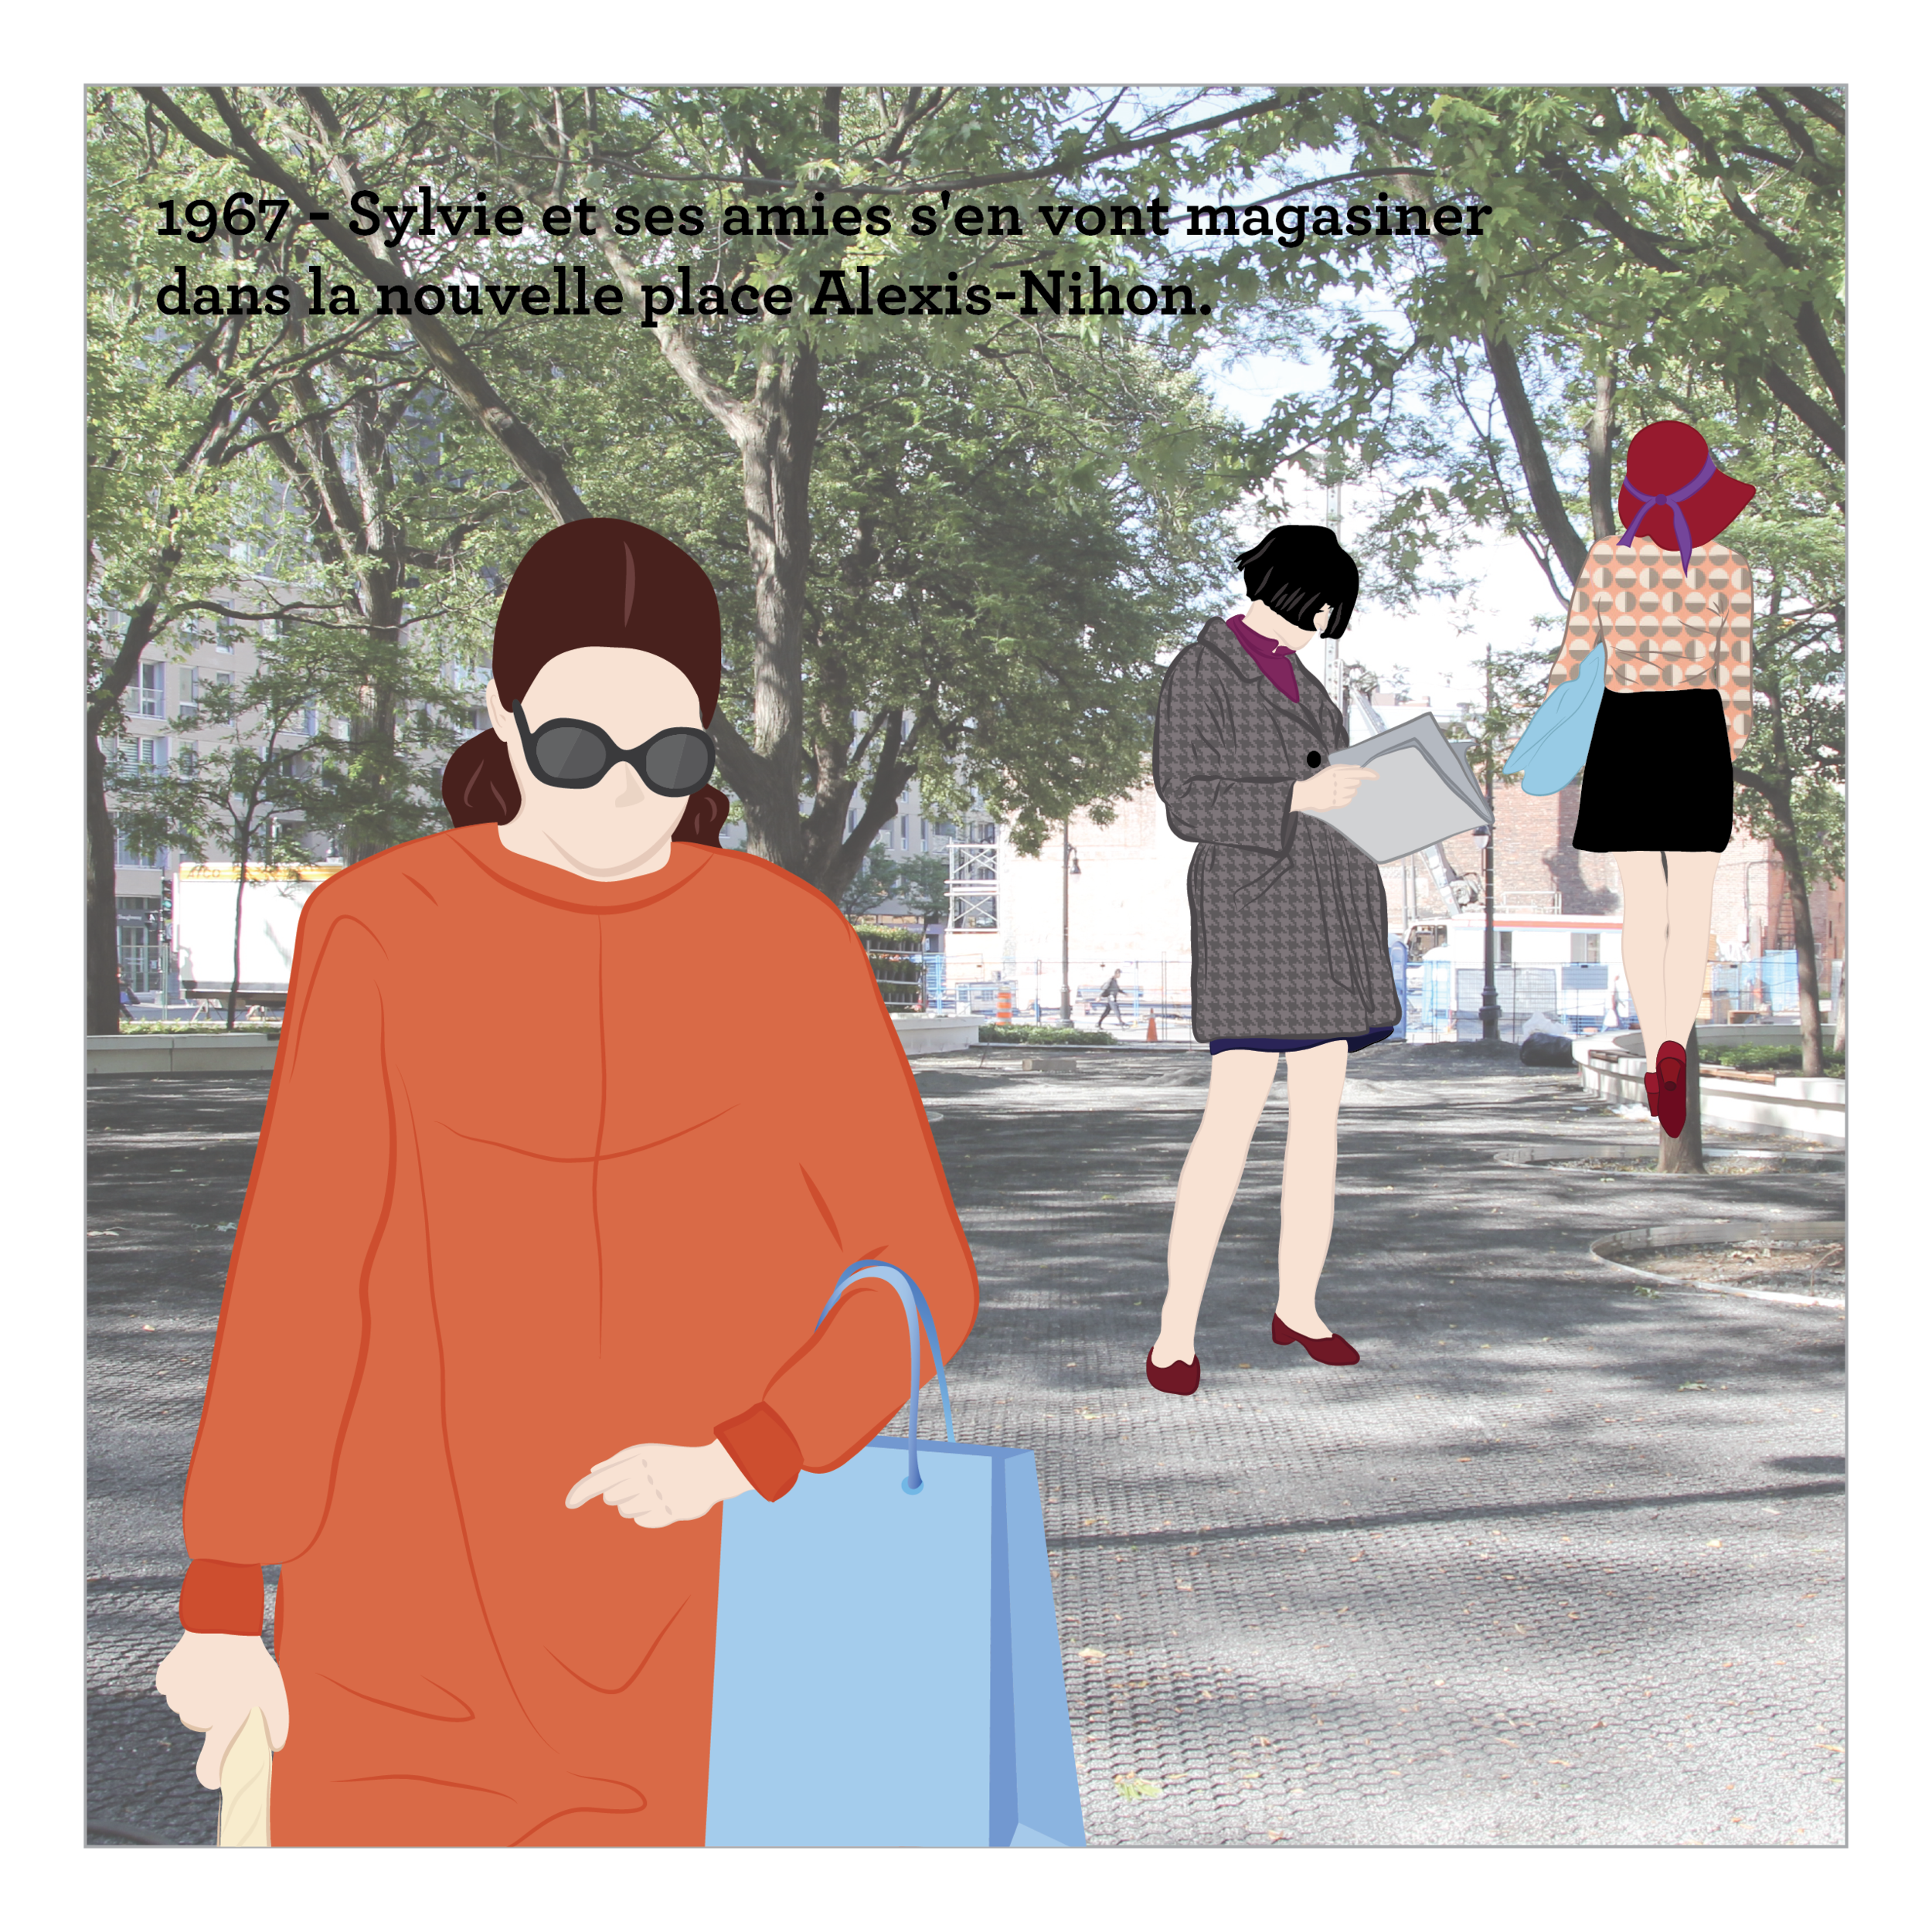 Cabot-defileStoryboardVueVisionneuse-030715-06.png